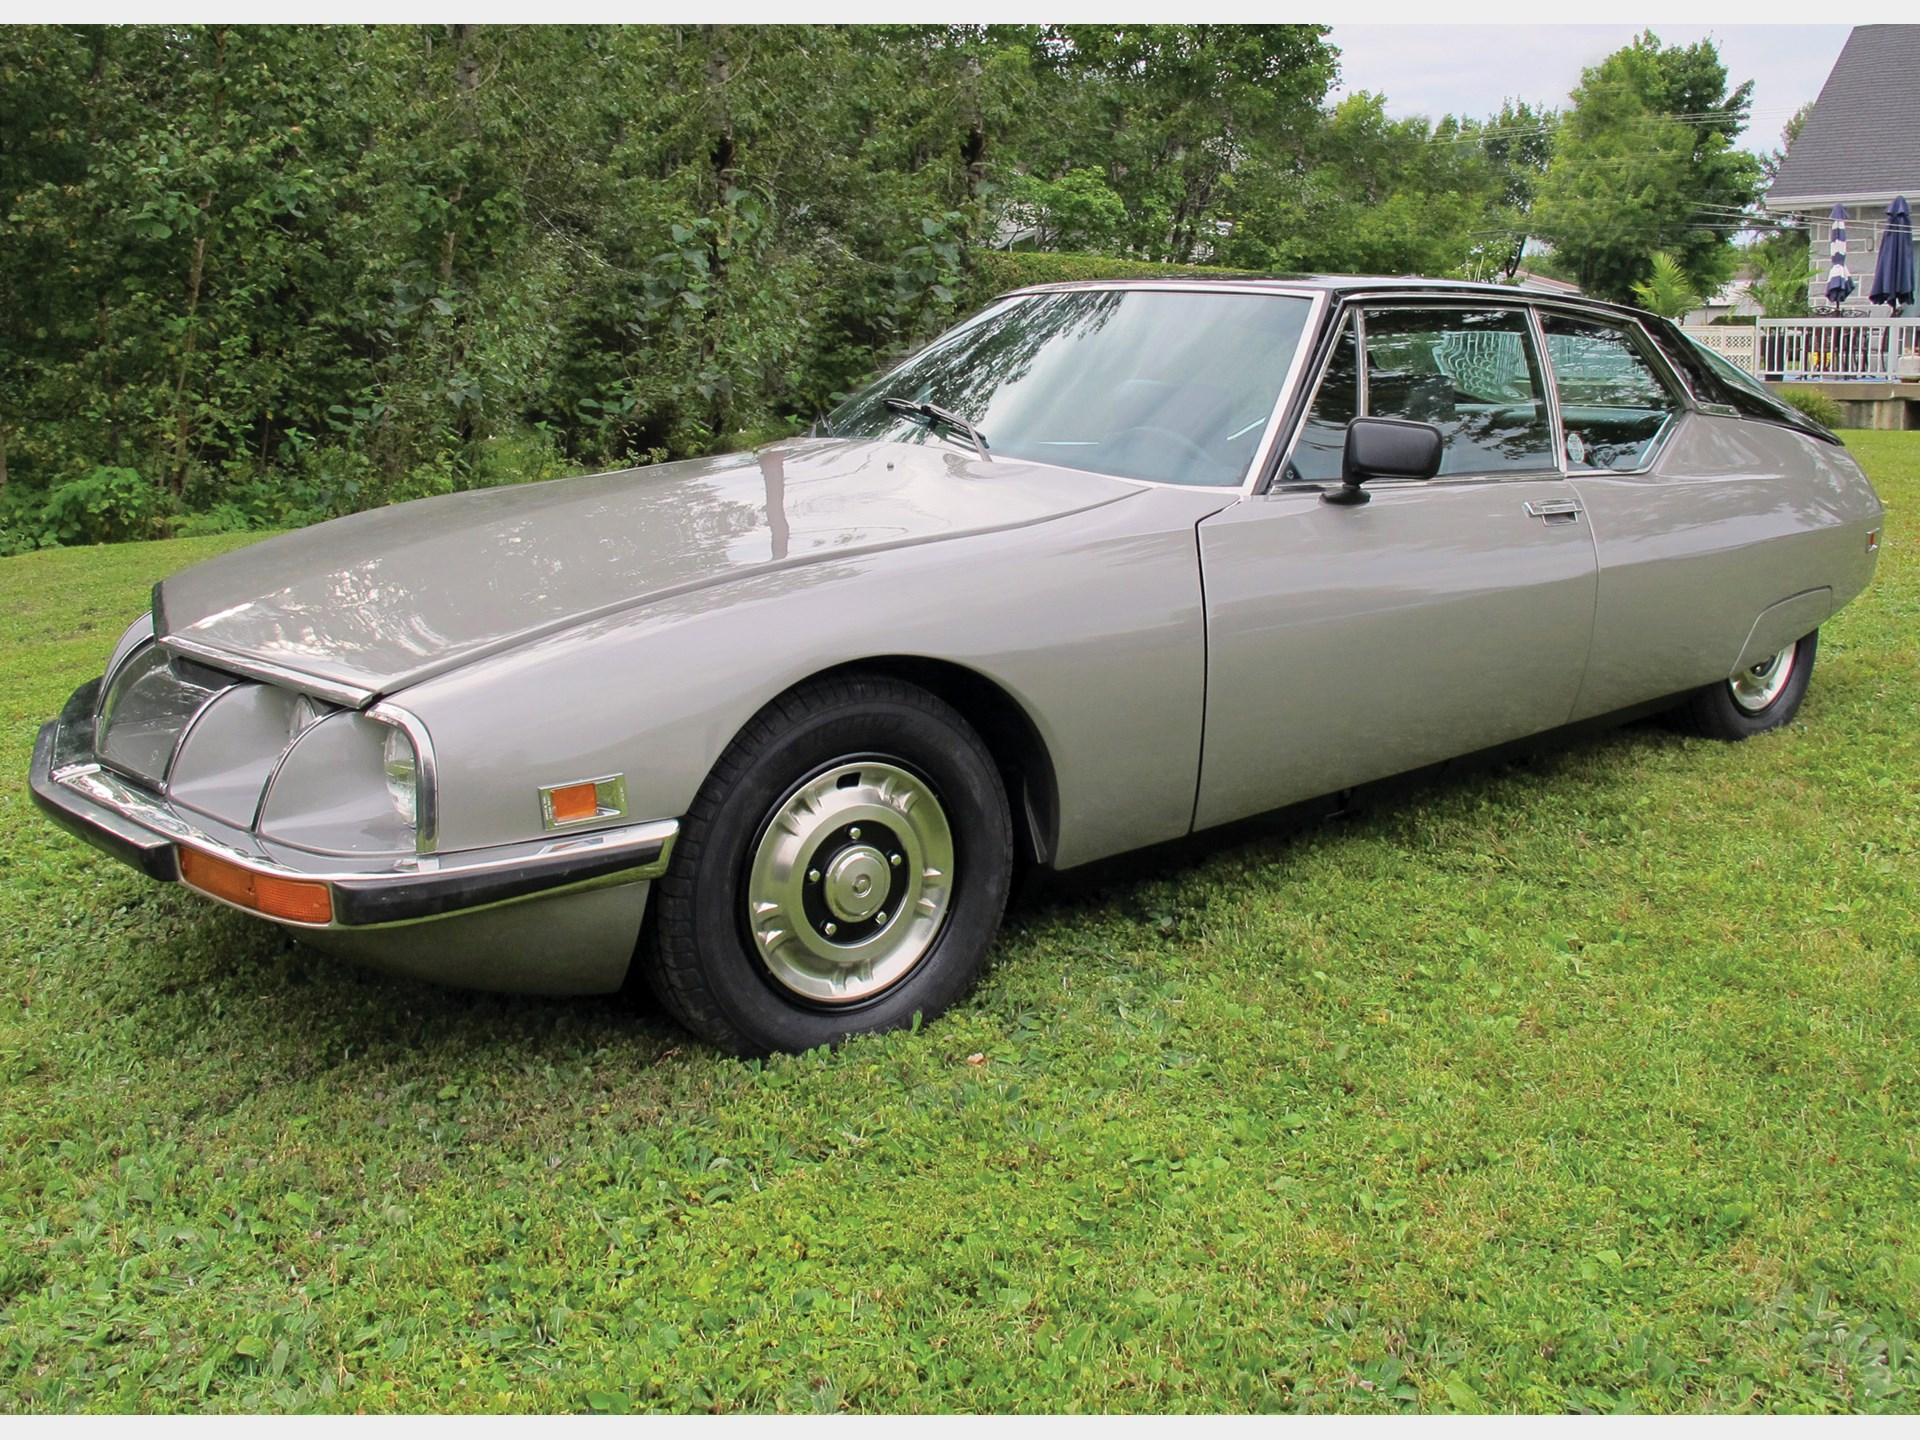 Image result for rm hershey 1972 Citroen SM Coupe